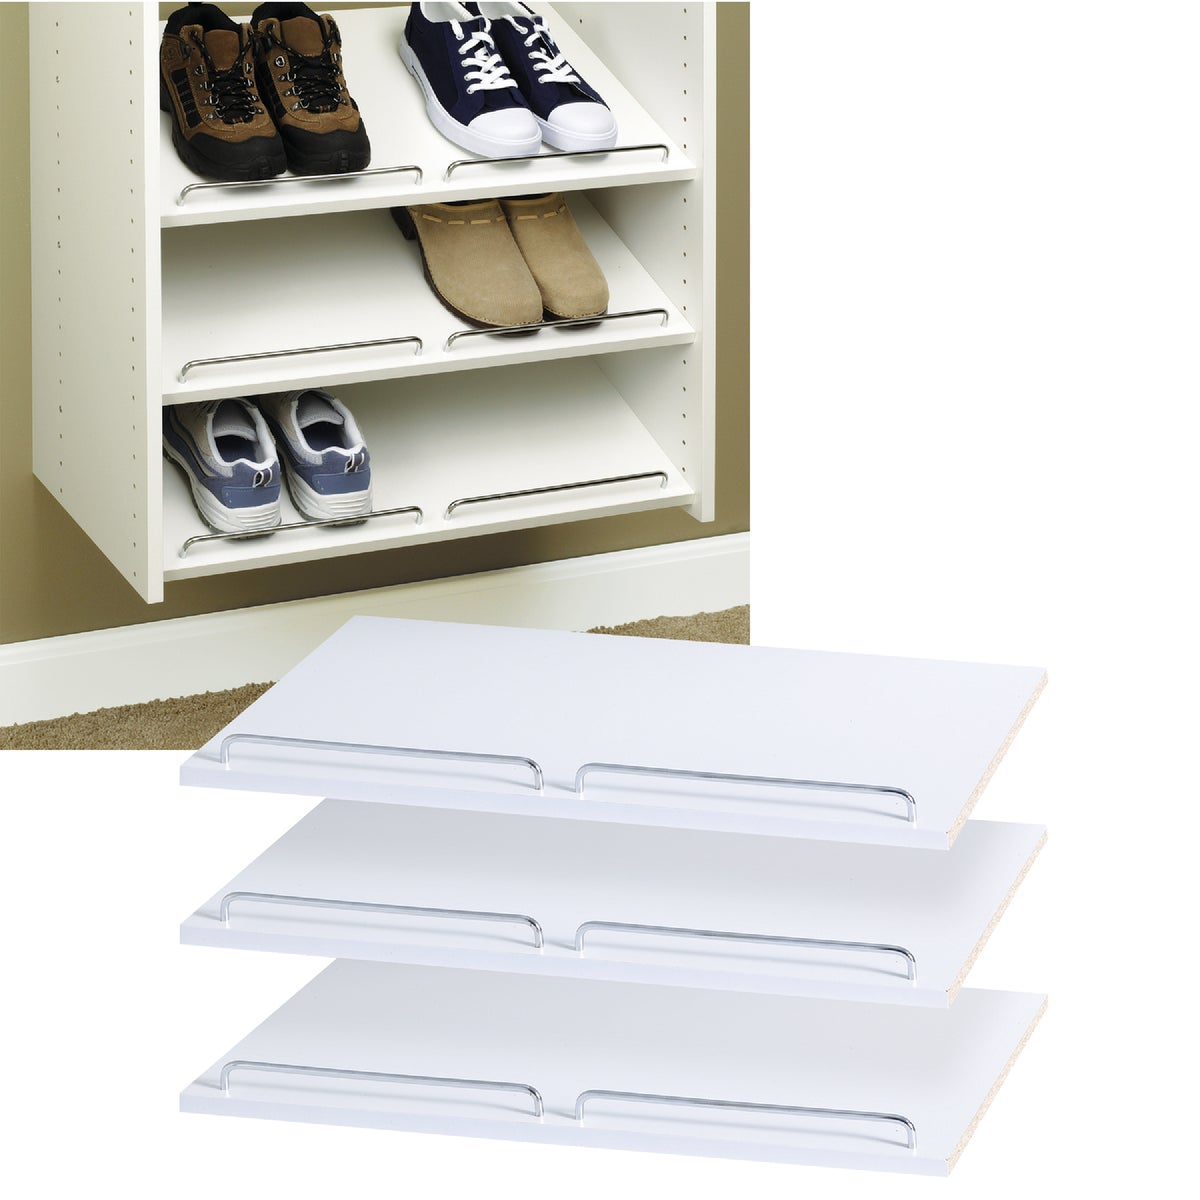 Windquest LAMINATED SHOE SHELVES RS1600